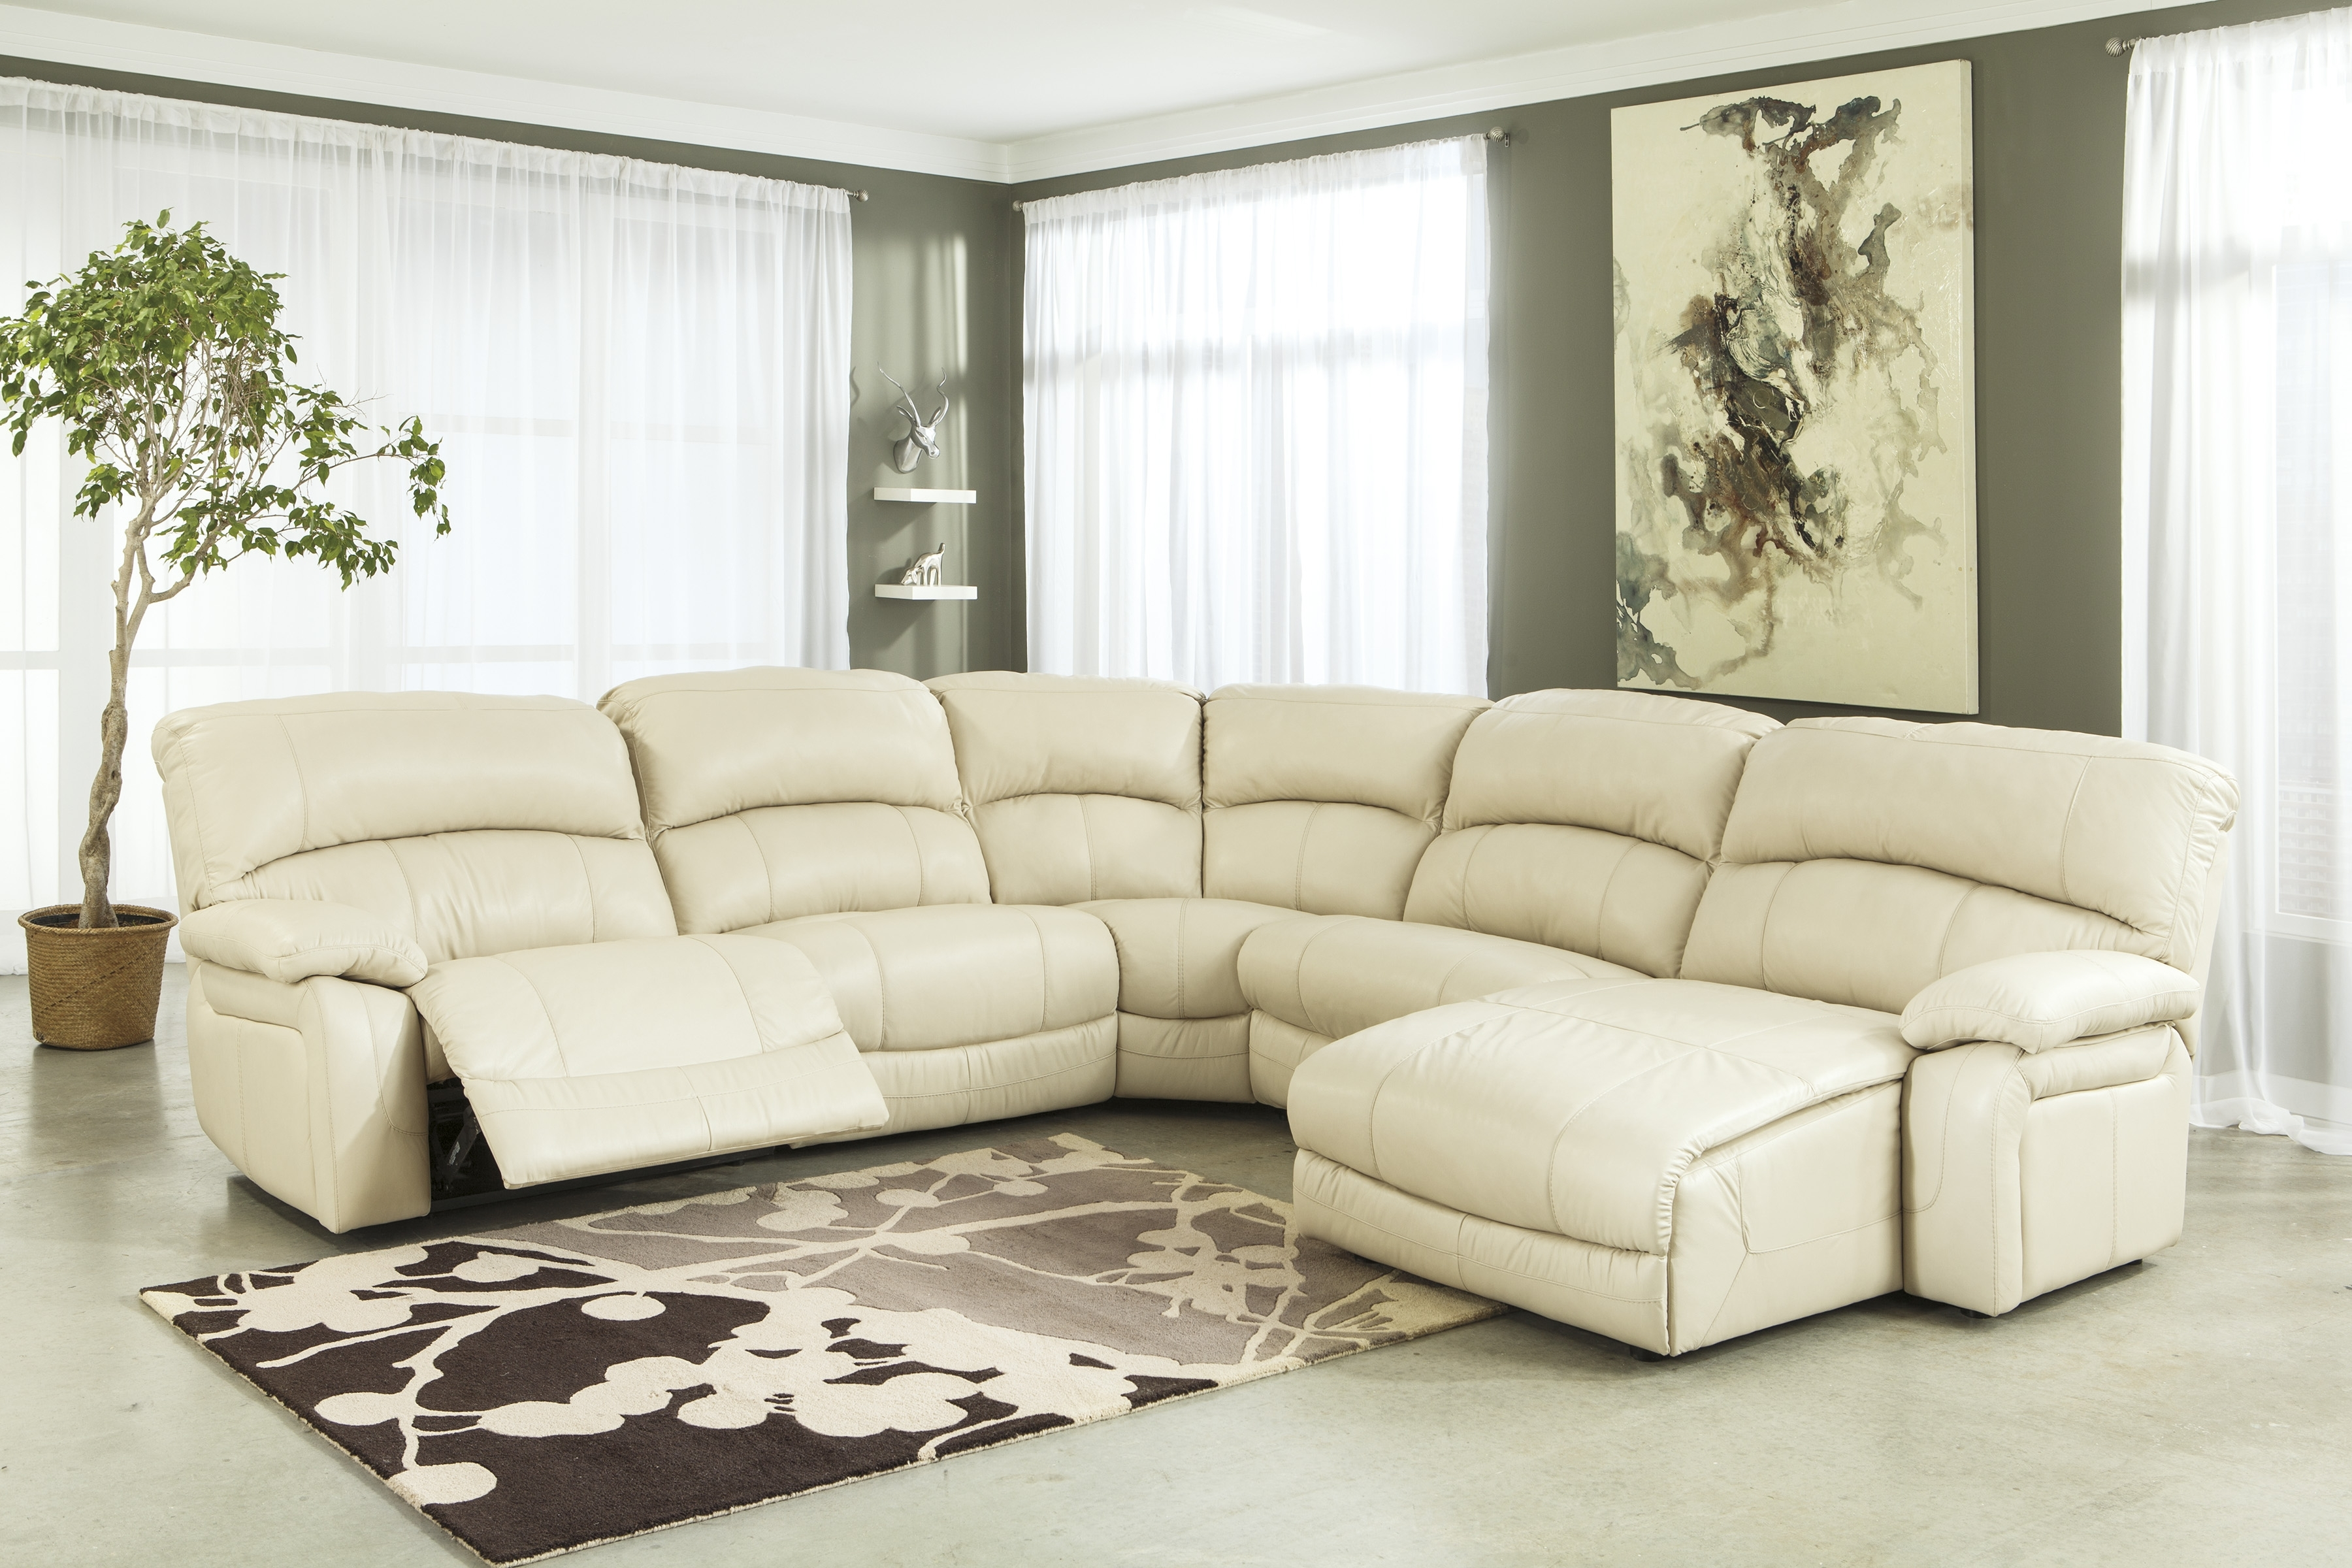 Most Up To Date Sectional Sofas With Power Recliners For One80 Power Recliner Reviews Power Reclining Sectional Reviews (View 8 of 15)